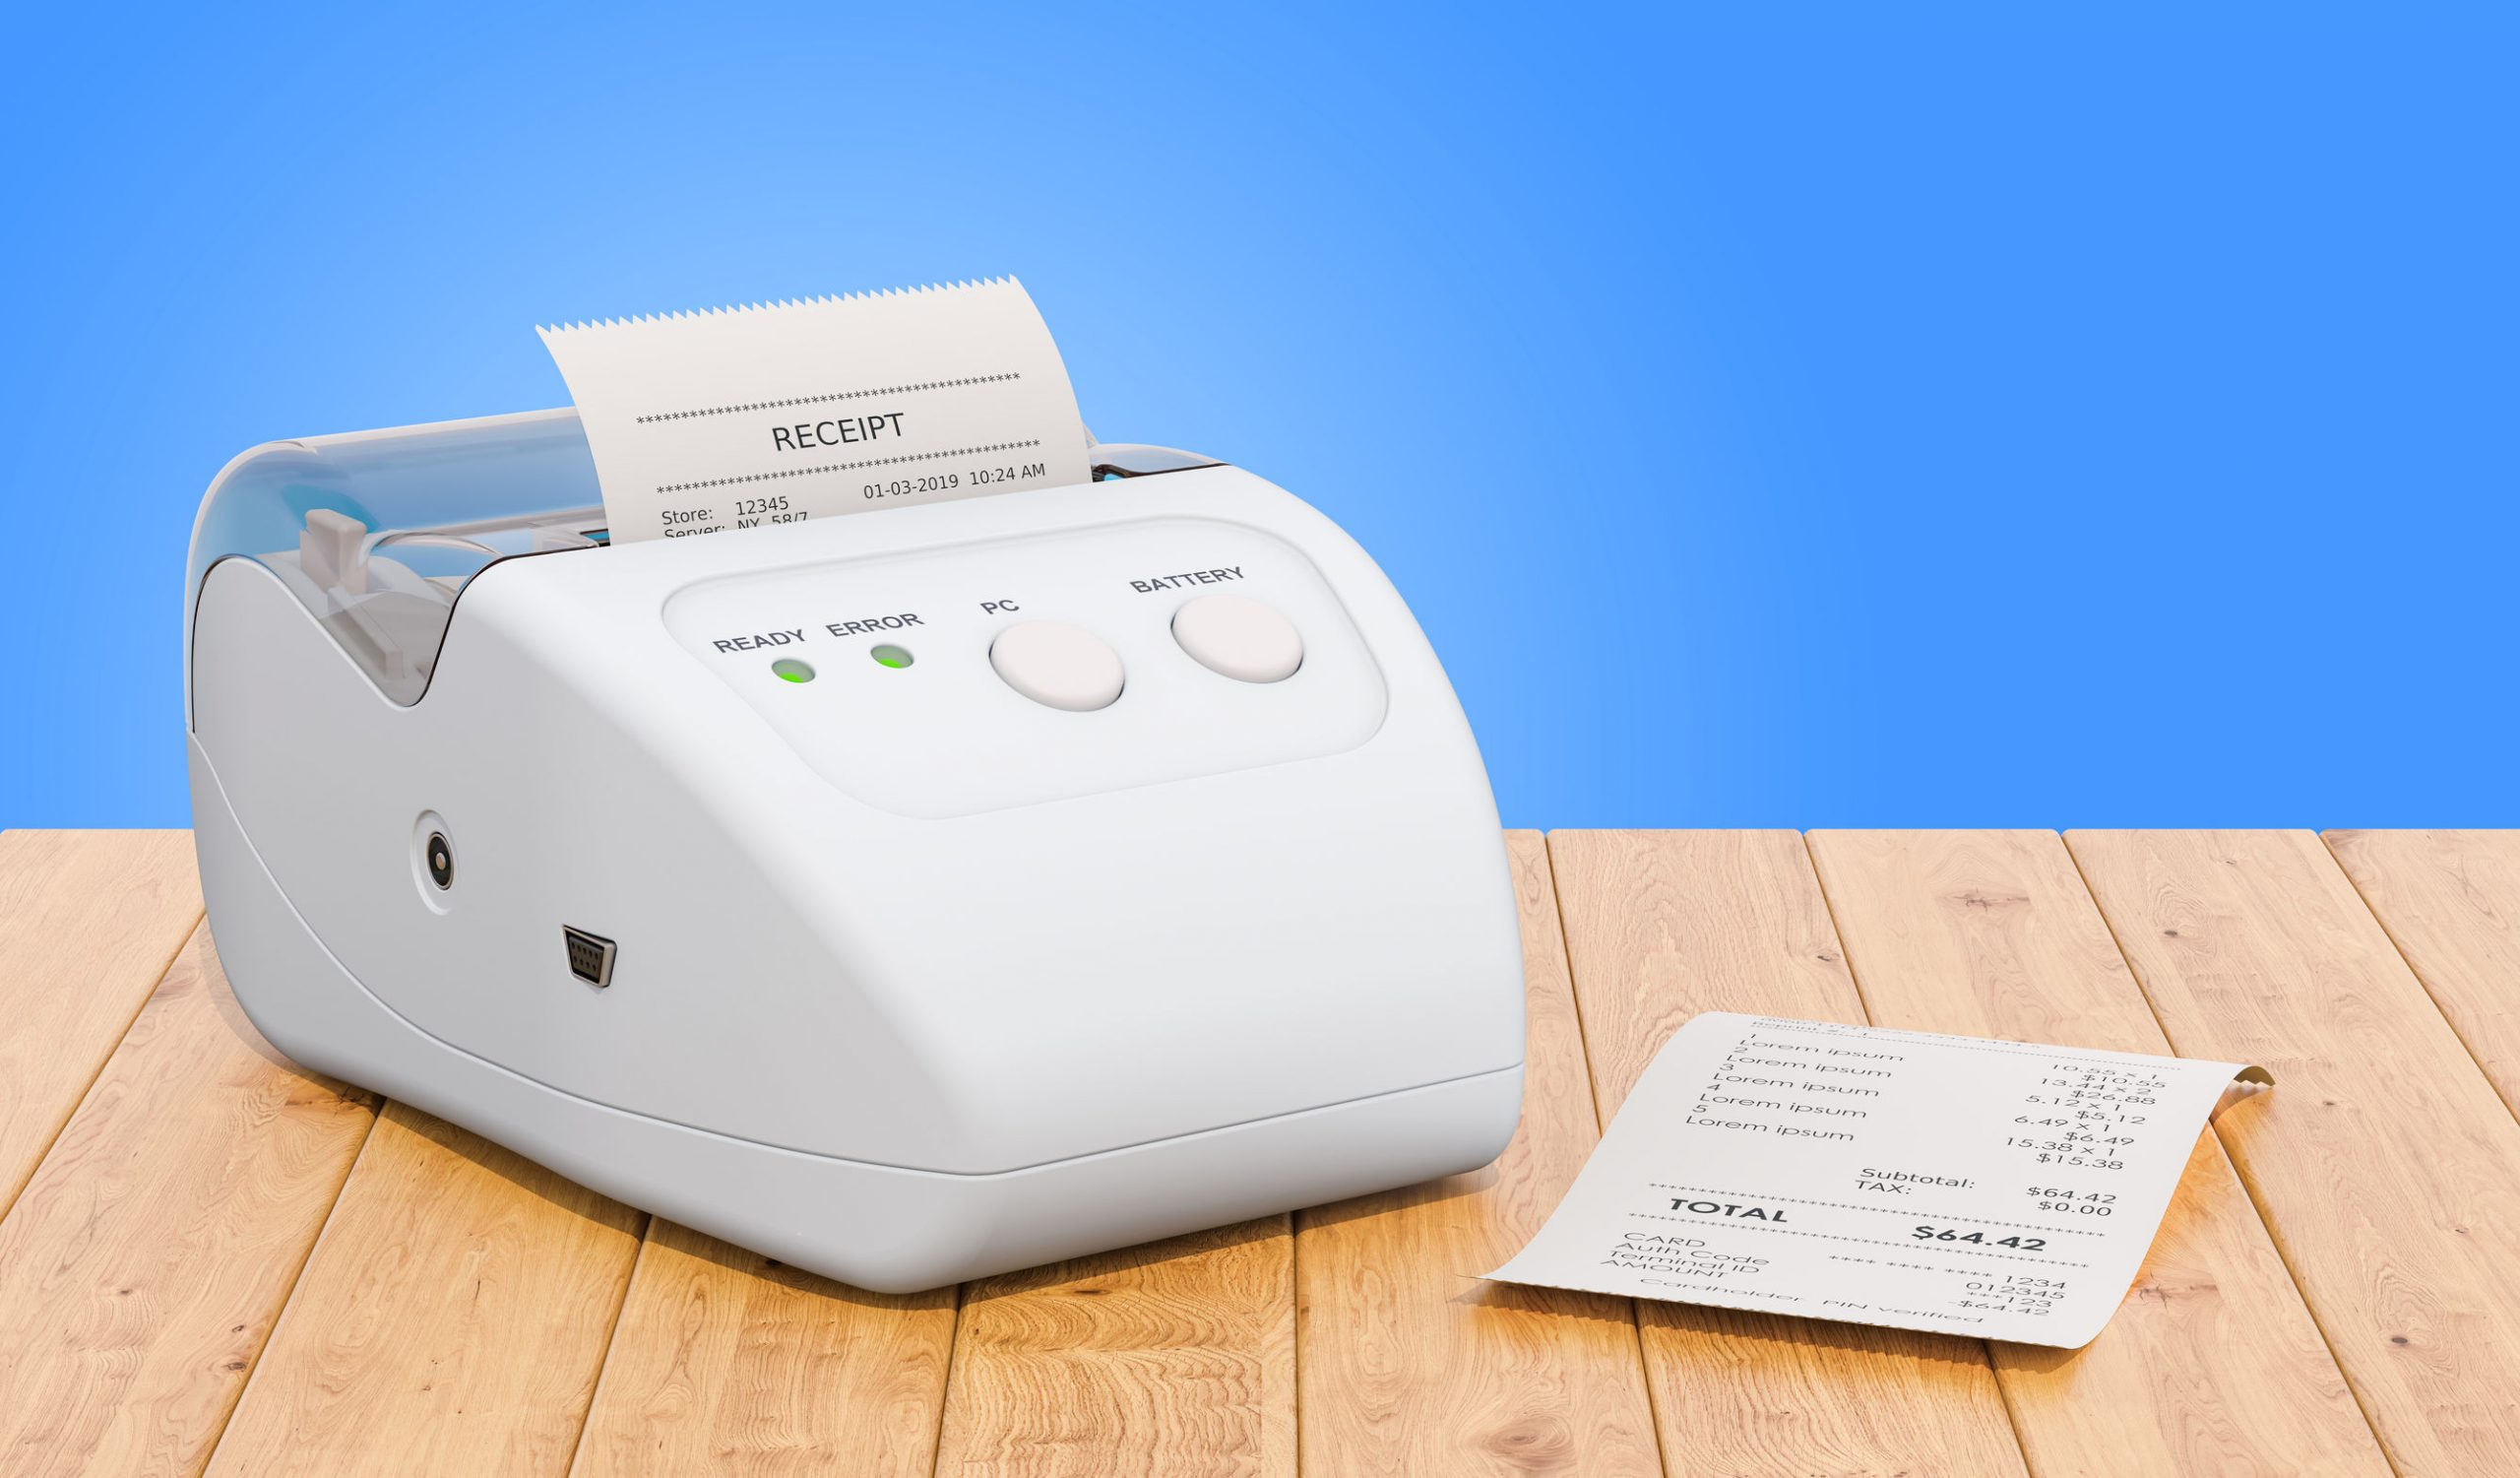 Receipt printer for POS on the wooden table, 3D rendering